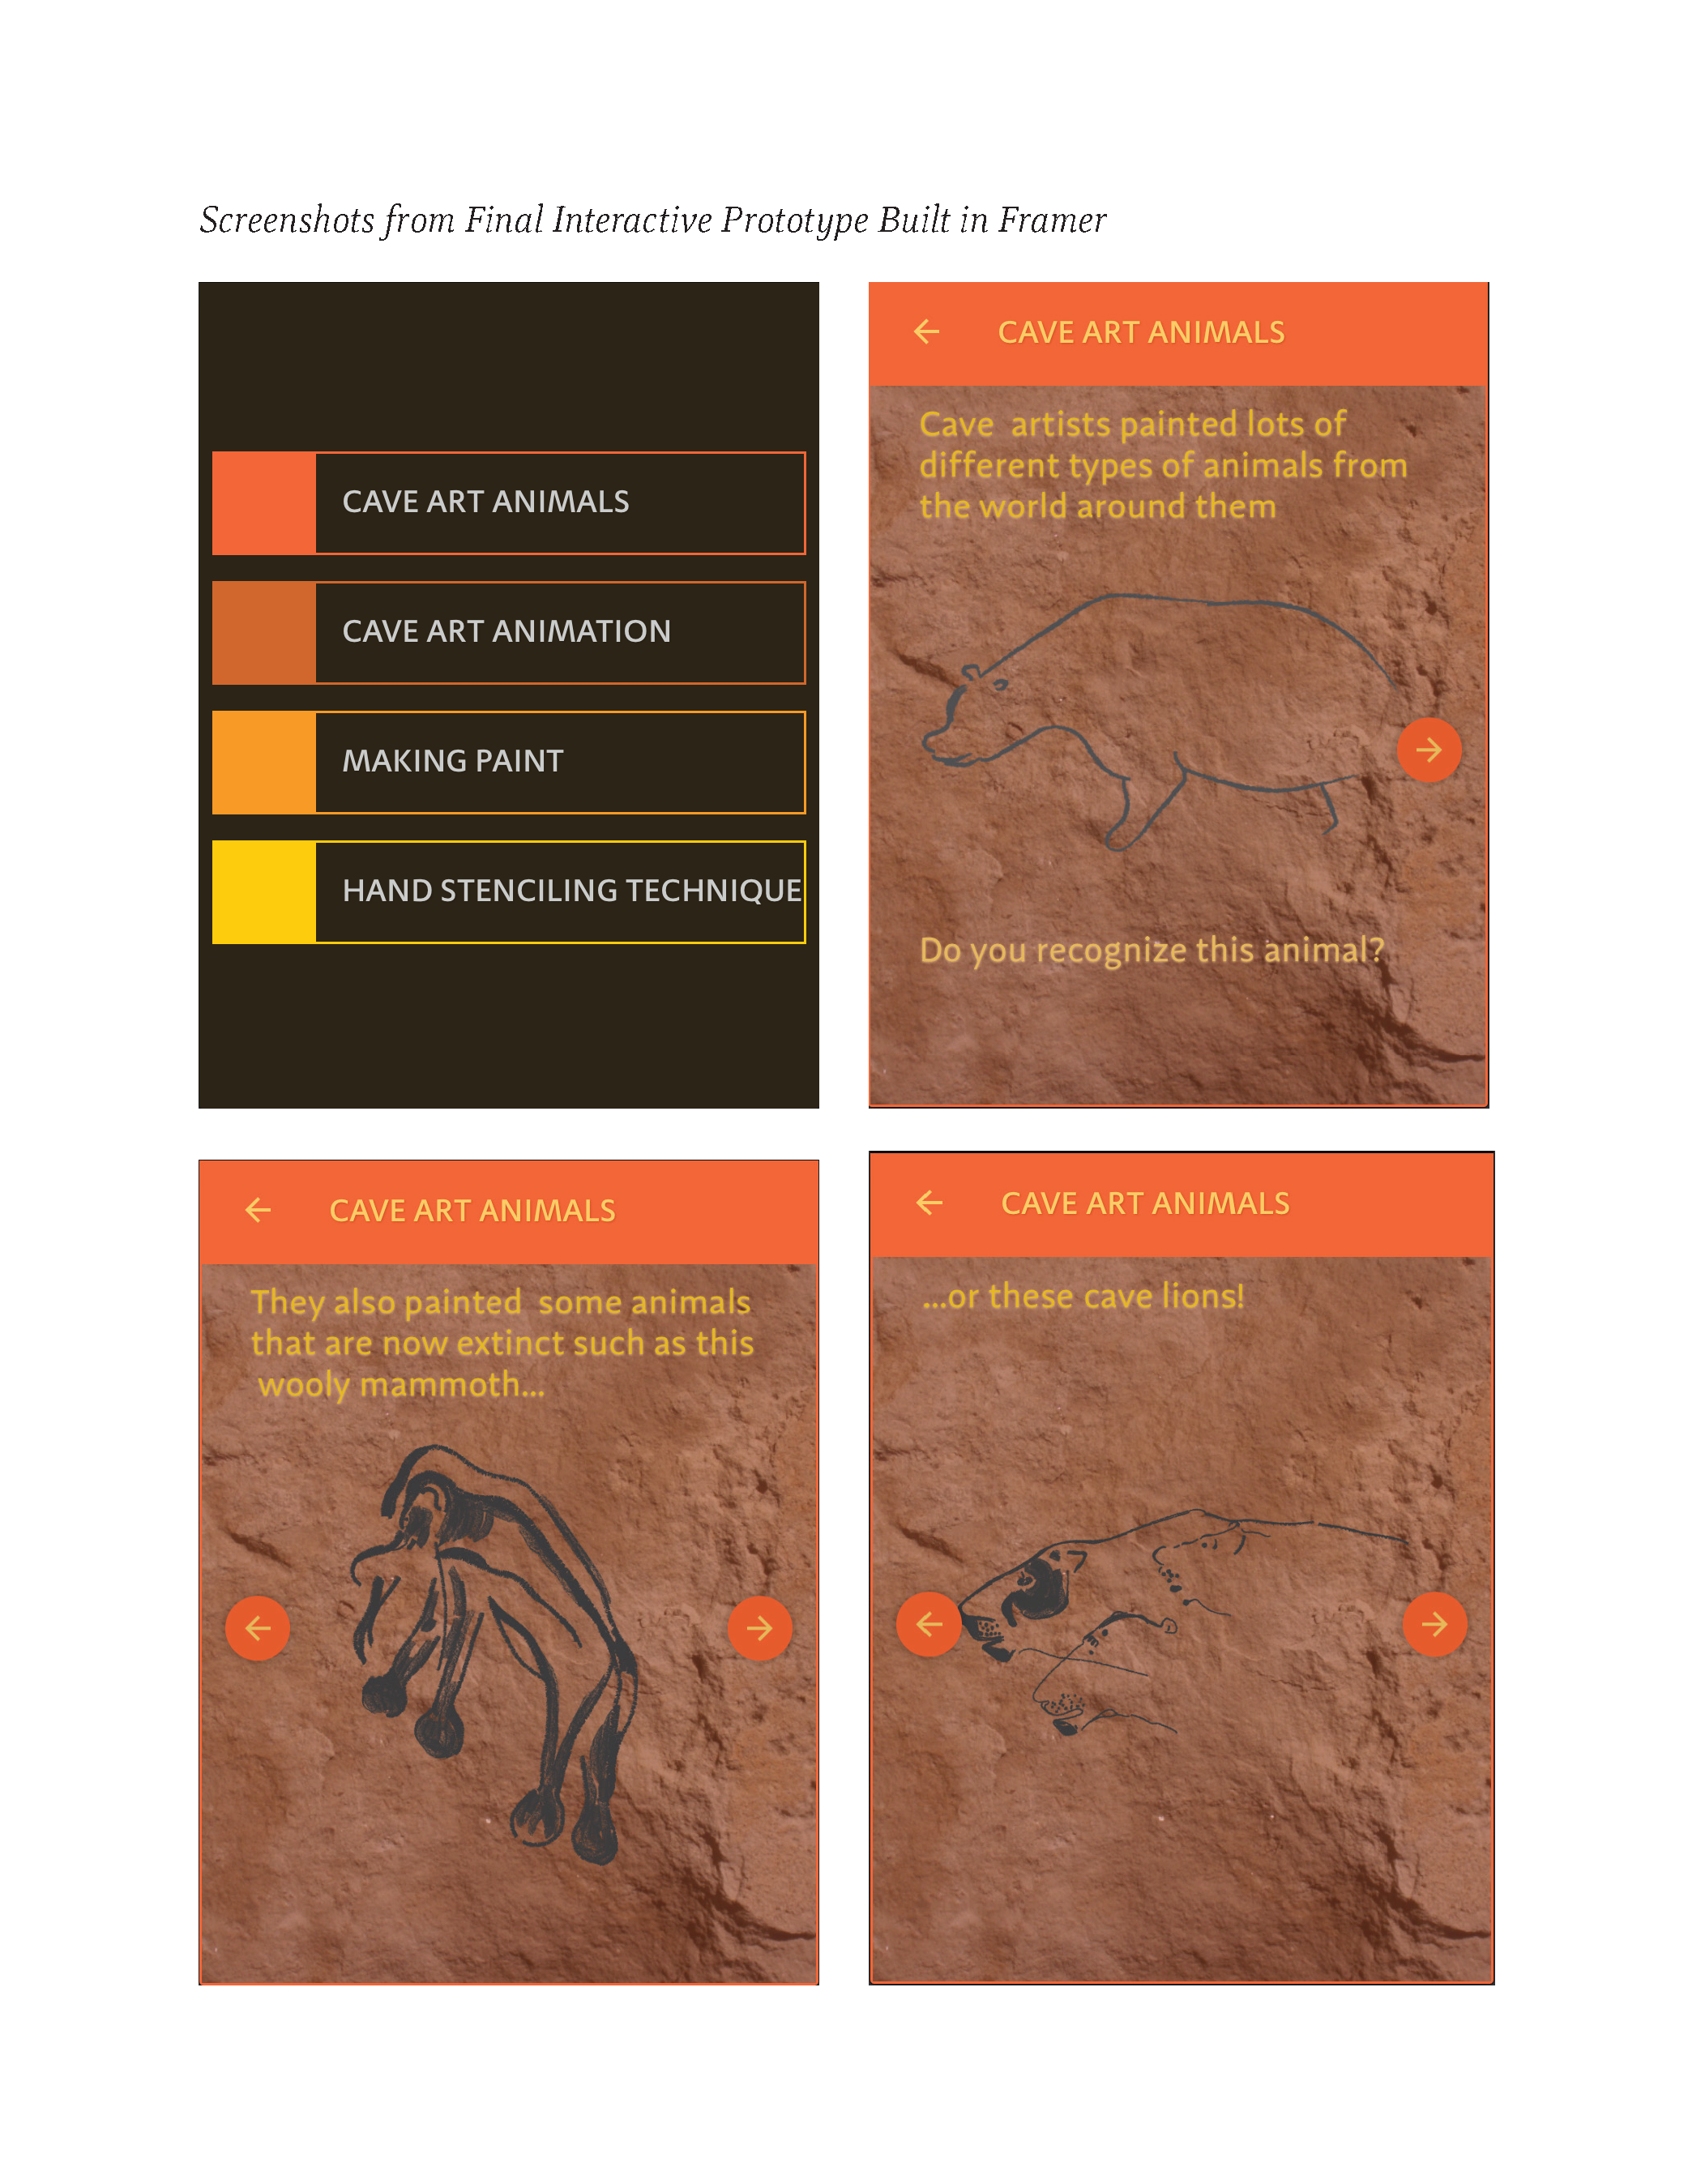 Paleo Journey_ An Interactive Paleolithic Cave Art Experience. Us_Page_86